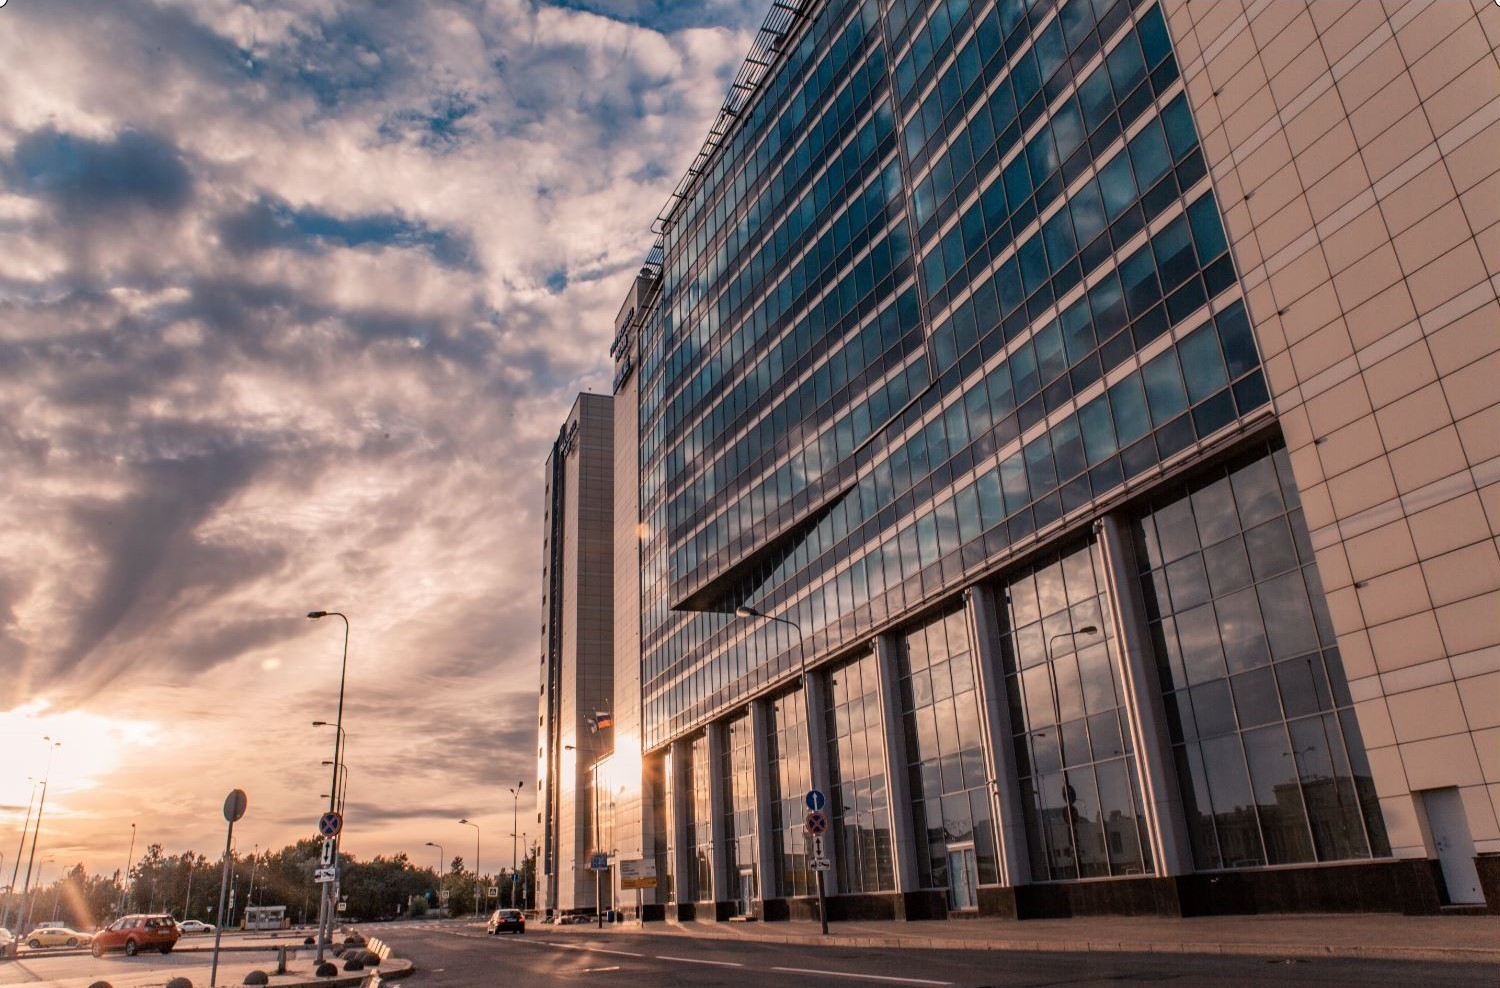 Pulkovo Sky Business Centre in St. Petersburg - among the top business centers in Russia.